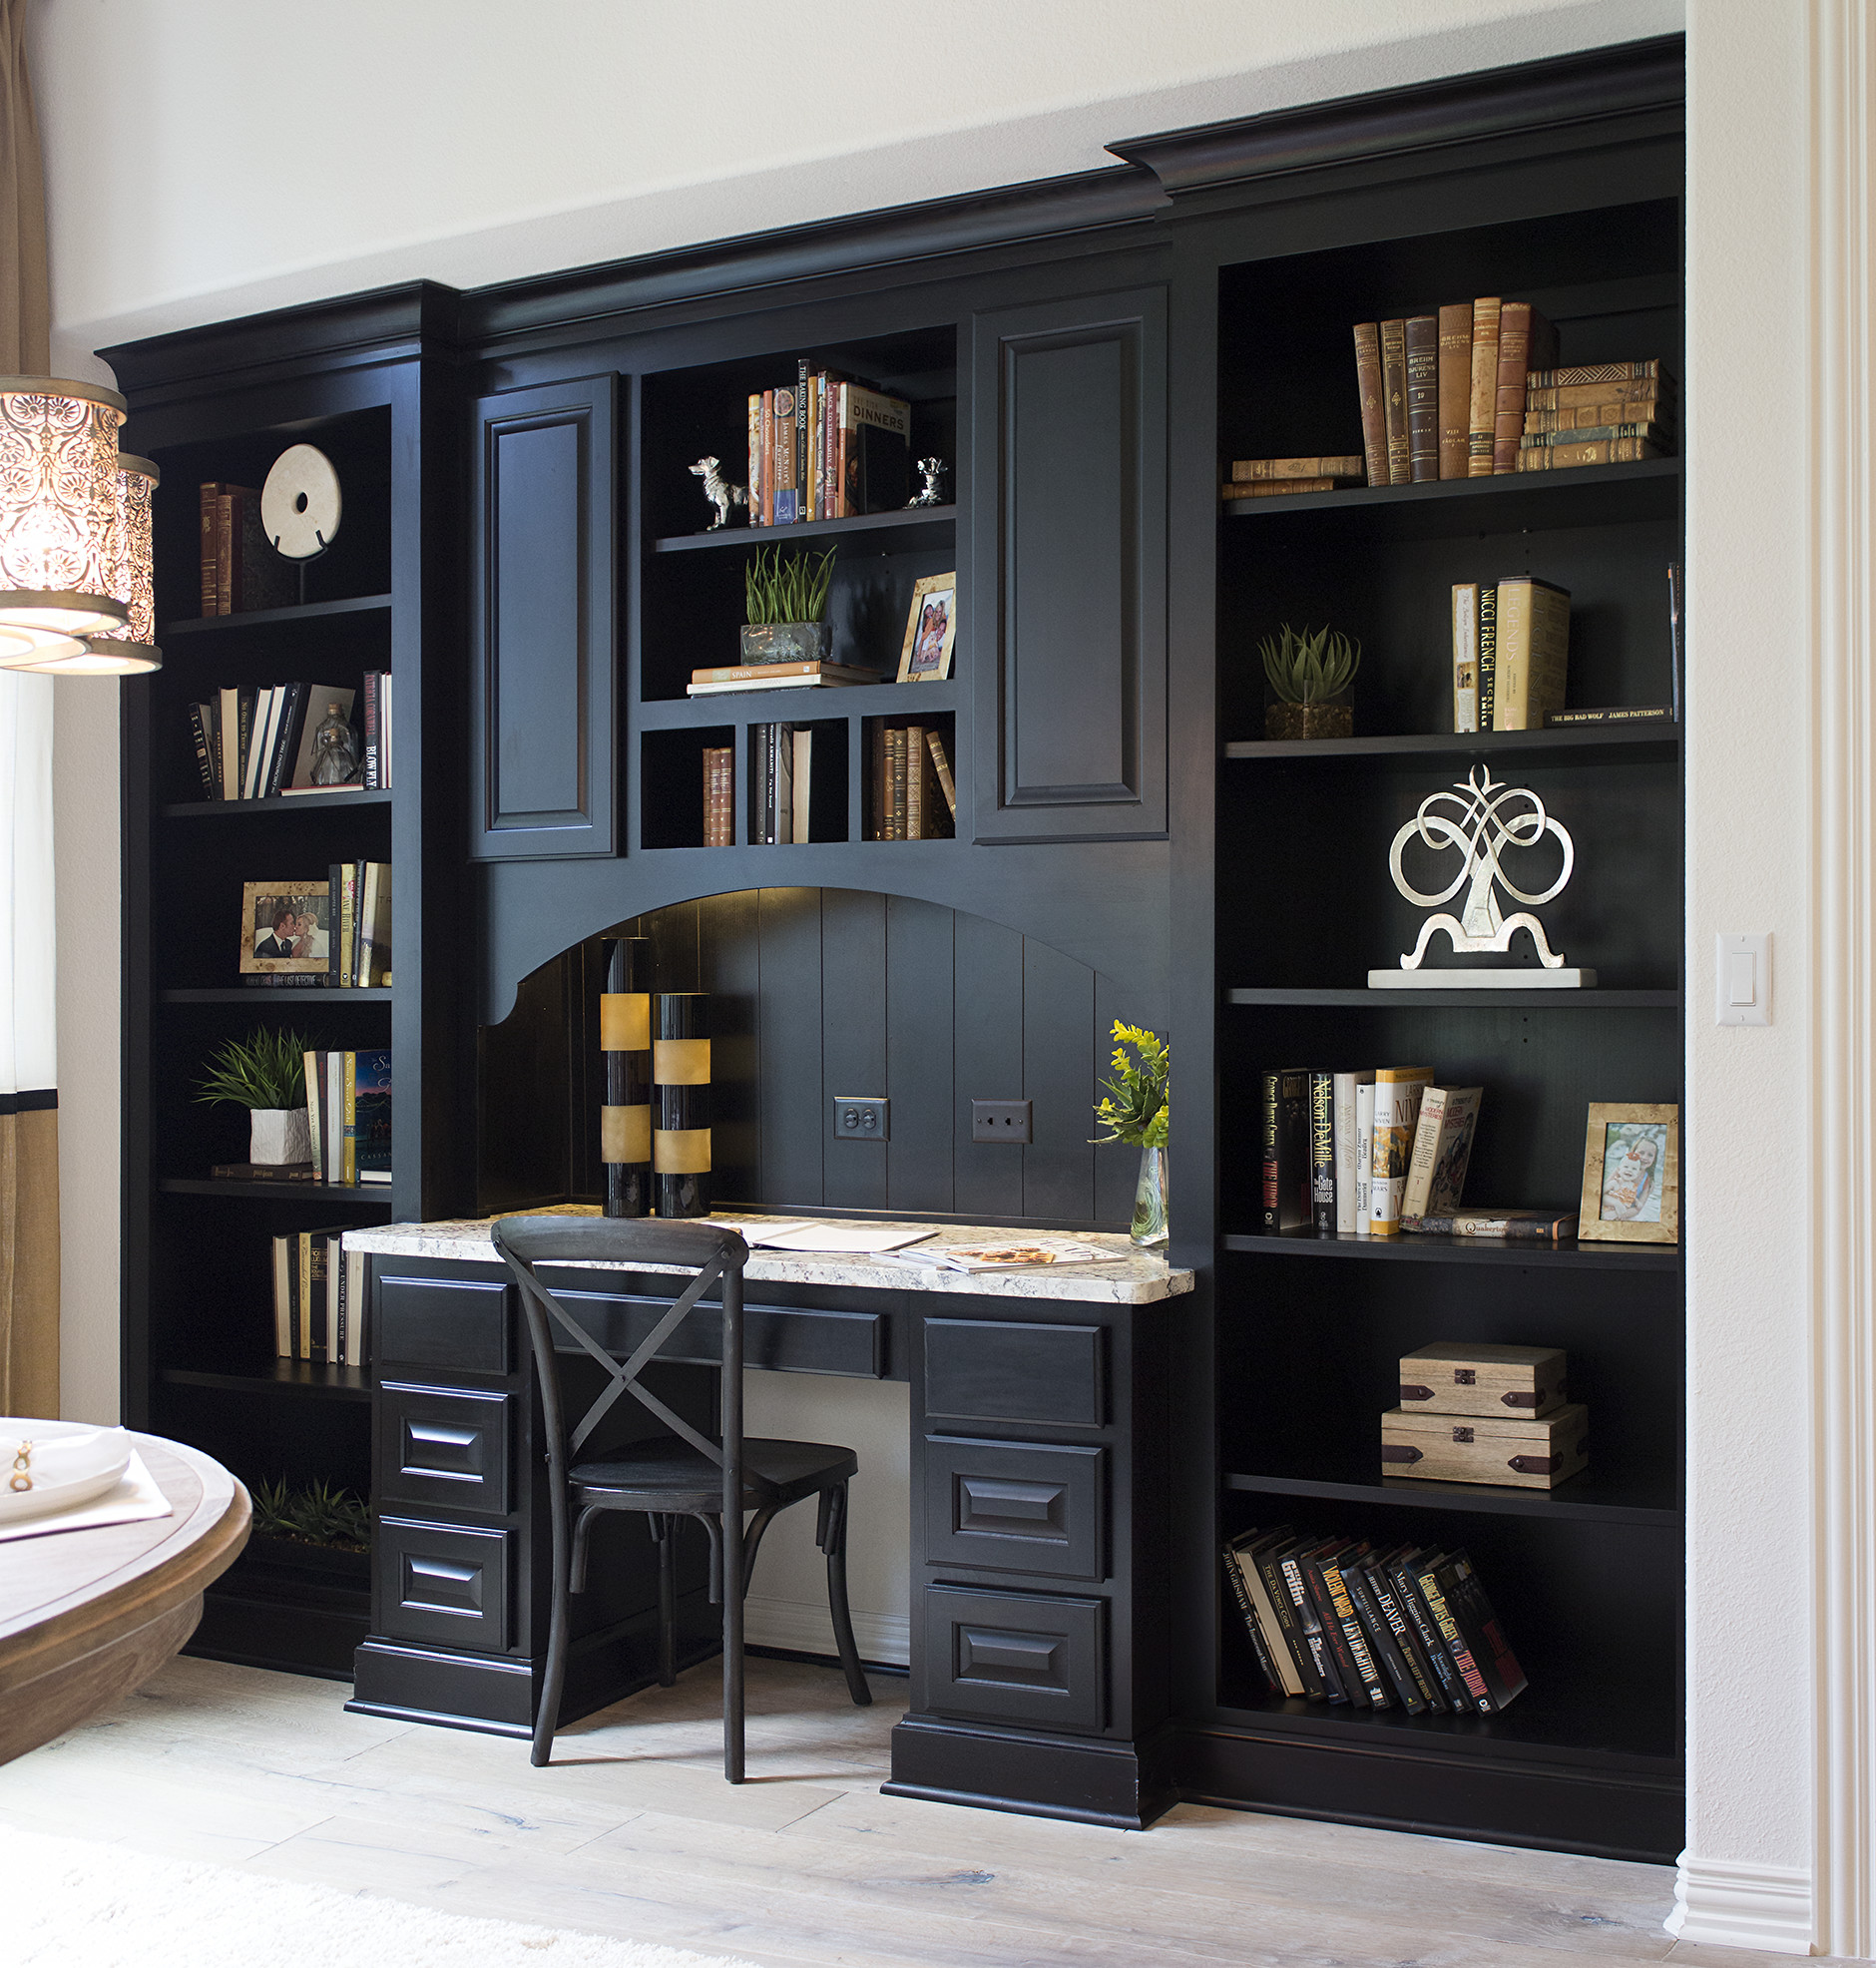 Dining room workstation with built in desk and bookshelves